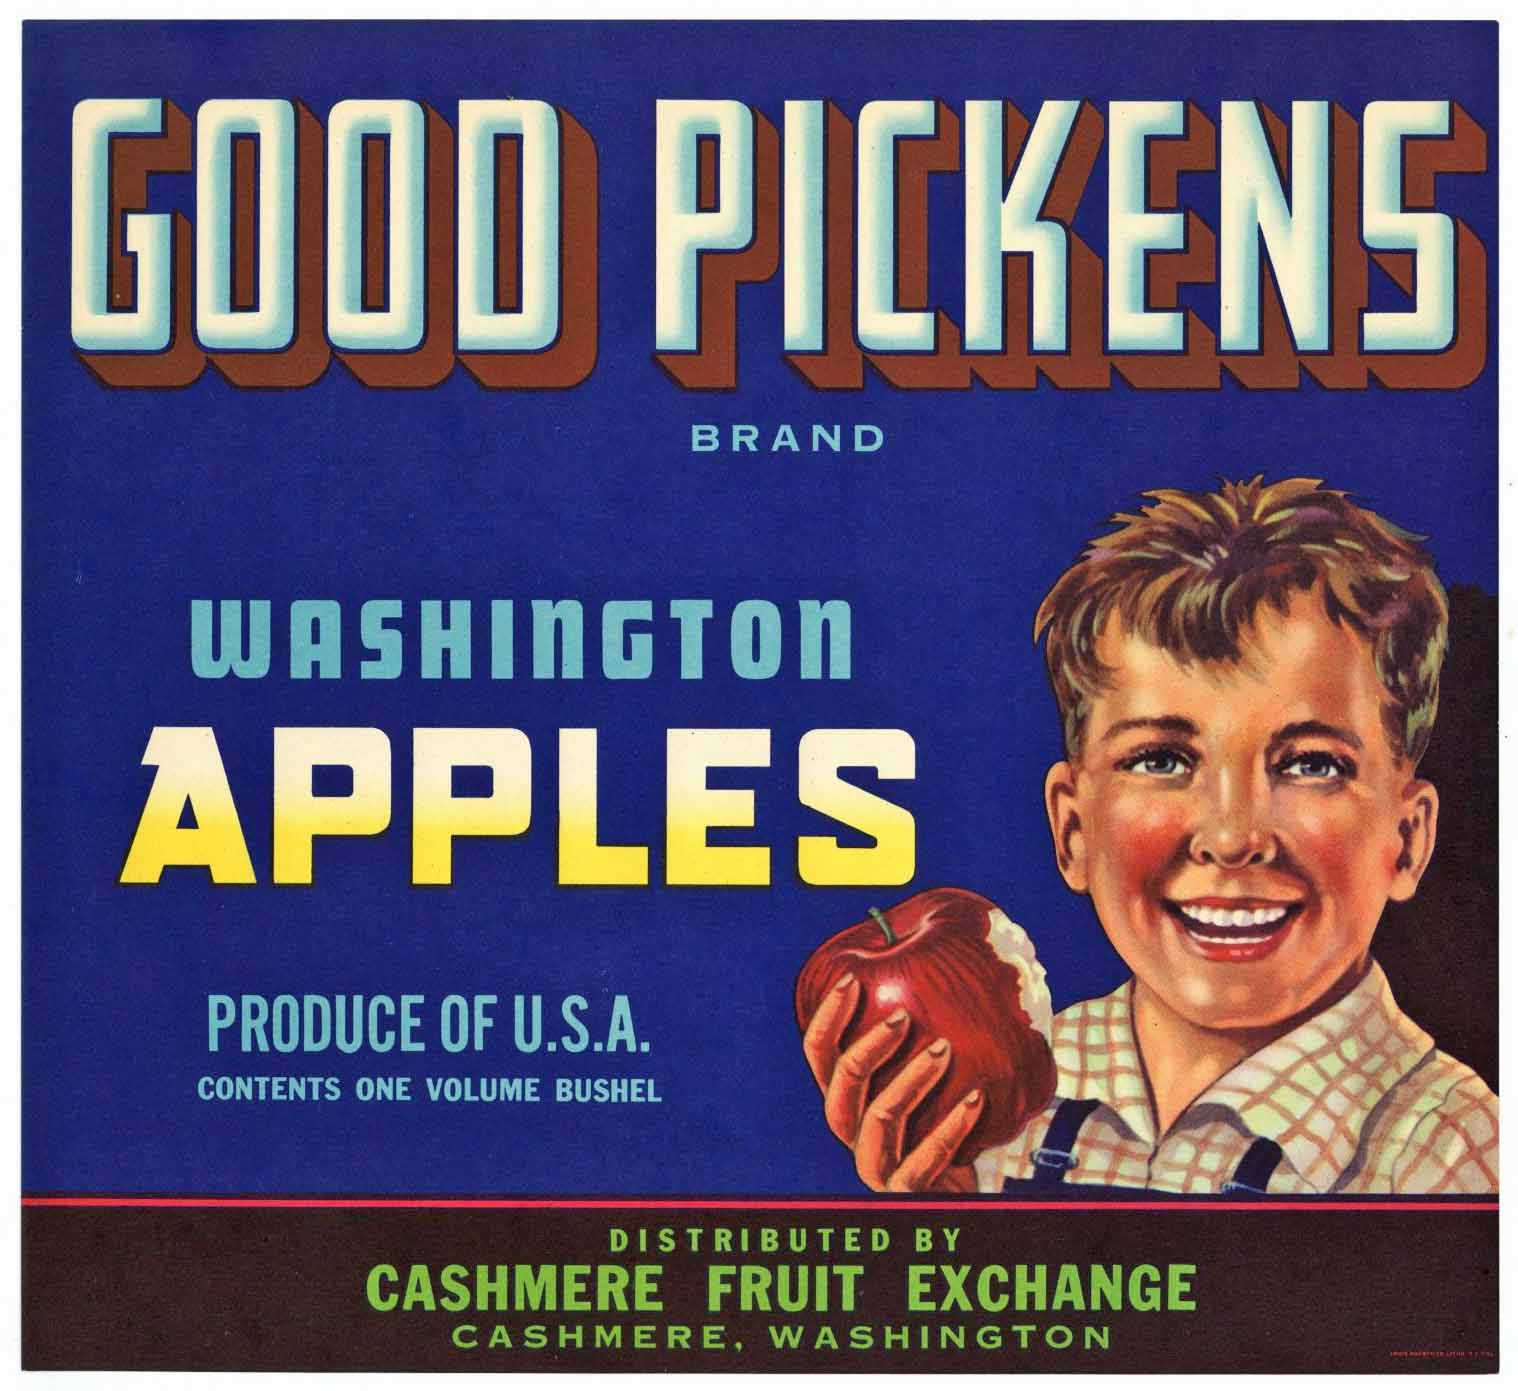 Good Pickens Brand Vintage Cashmere Washington Apple Crate Label